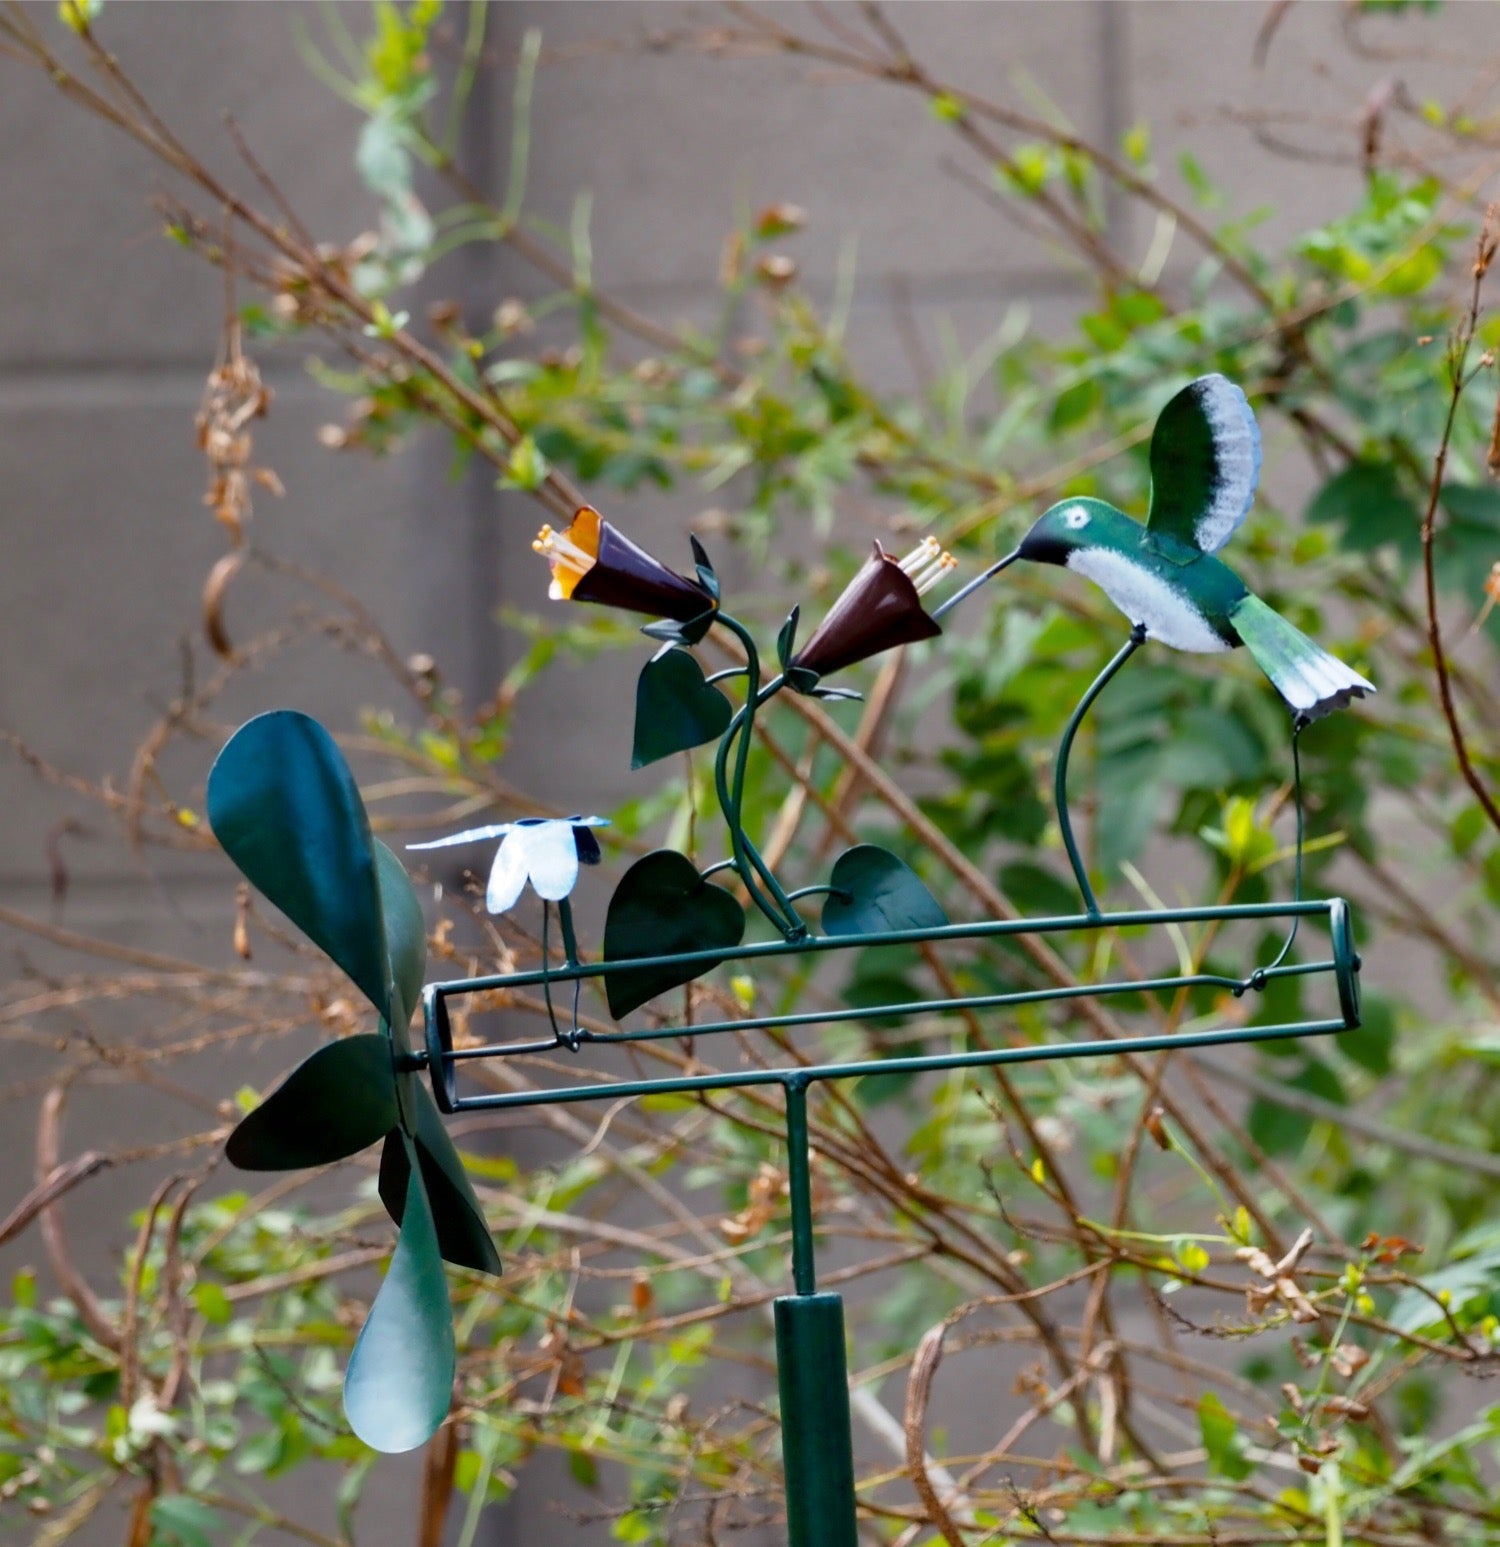 We Love Hummingbirds & Dragonfly Whirligig Spinner